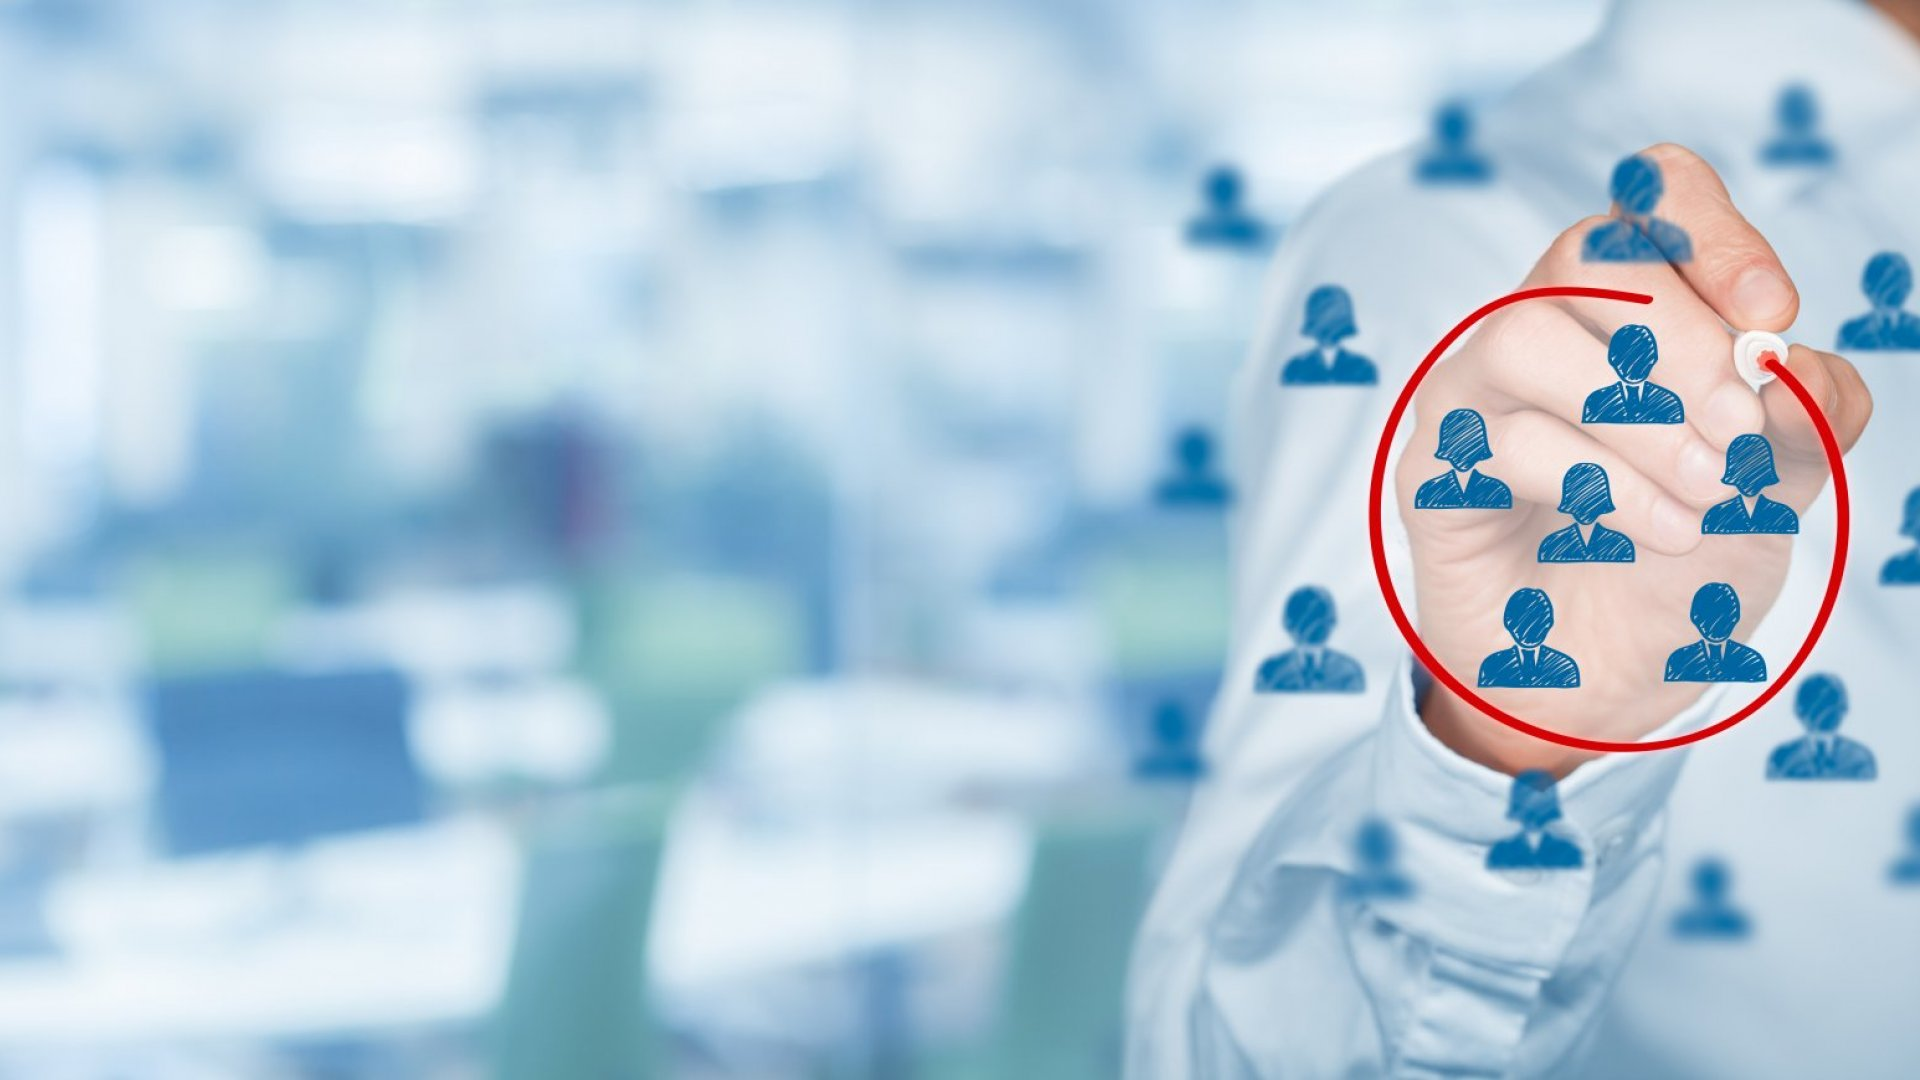 How to Find Your Ideal Customers on Social Media (Part 2)